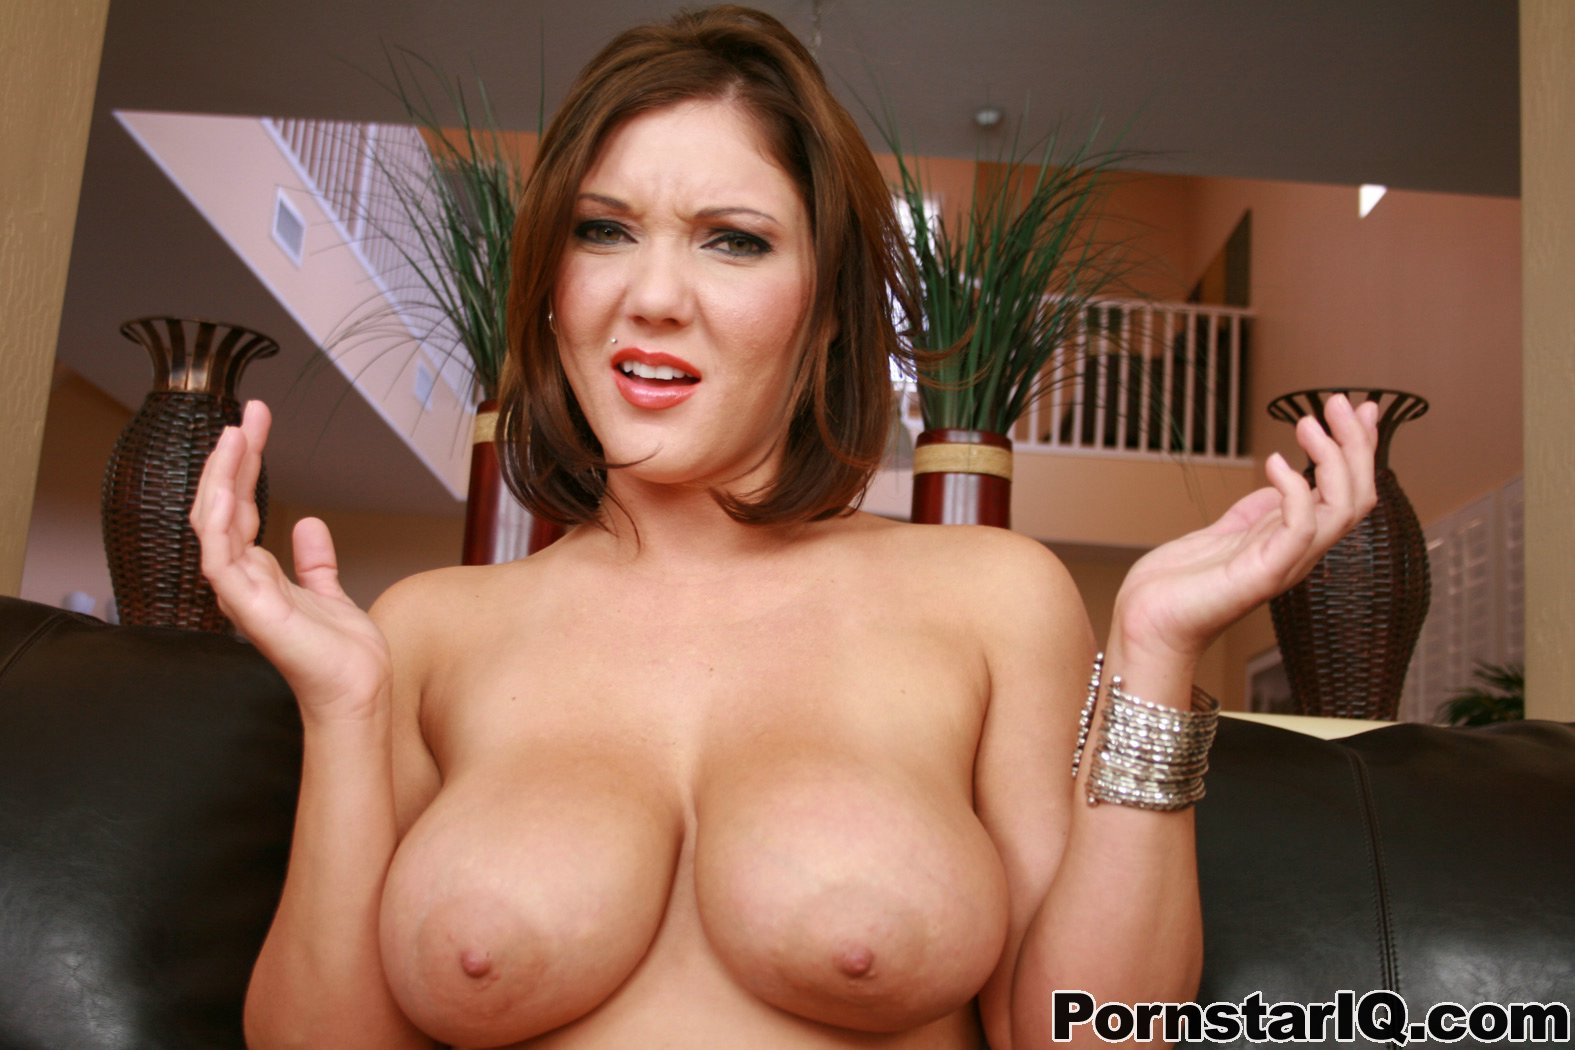 Claire dames images nude — 9